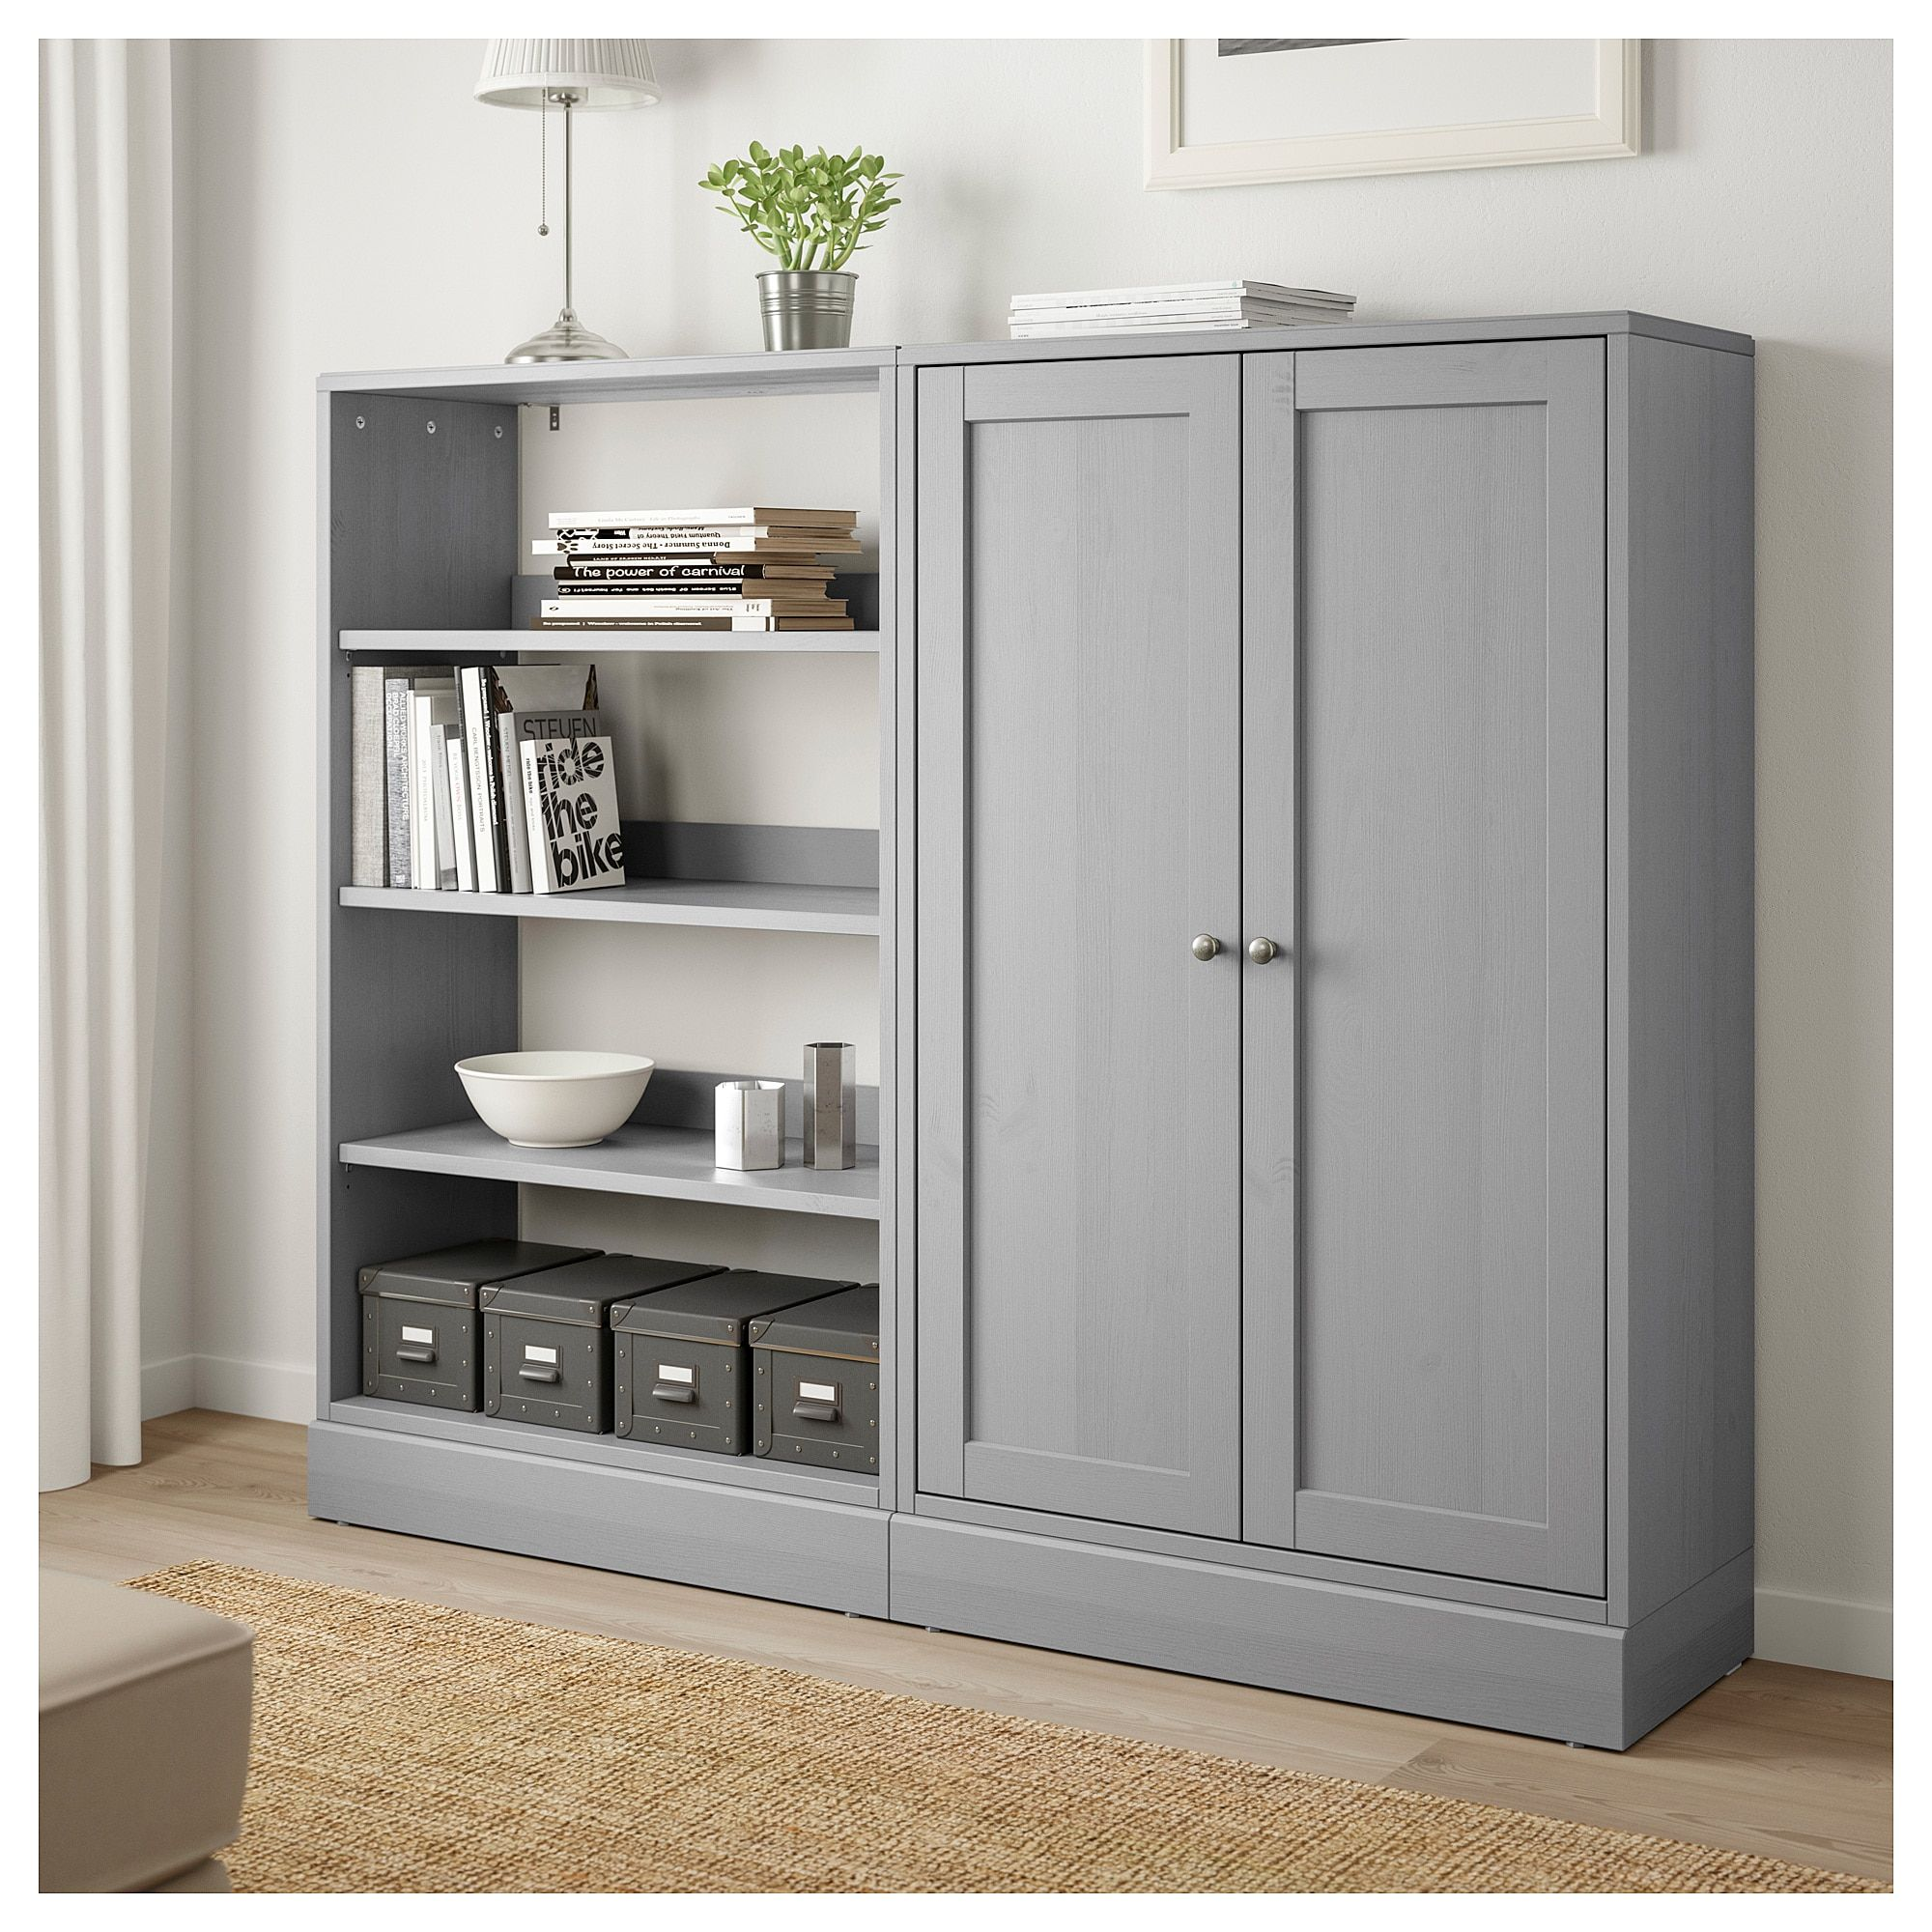 IKEA HAVSTA Storage combination gray Ikea, Wall